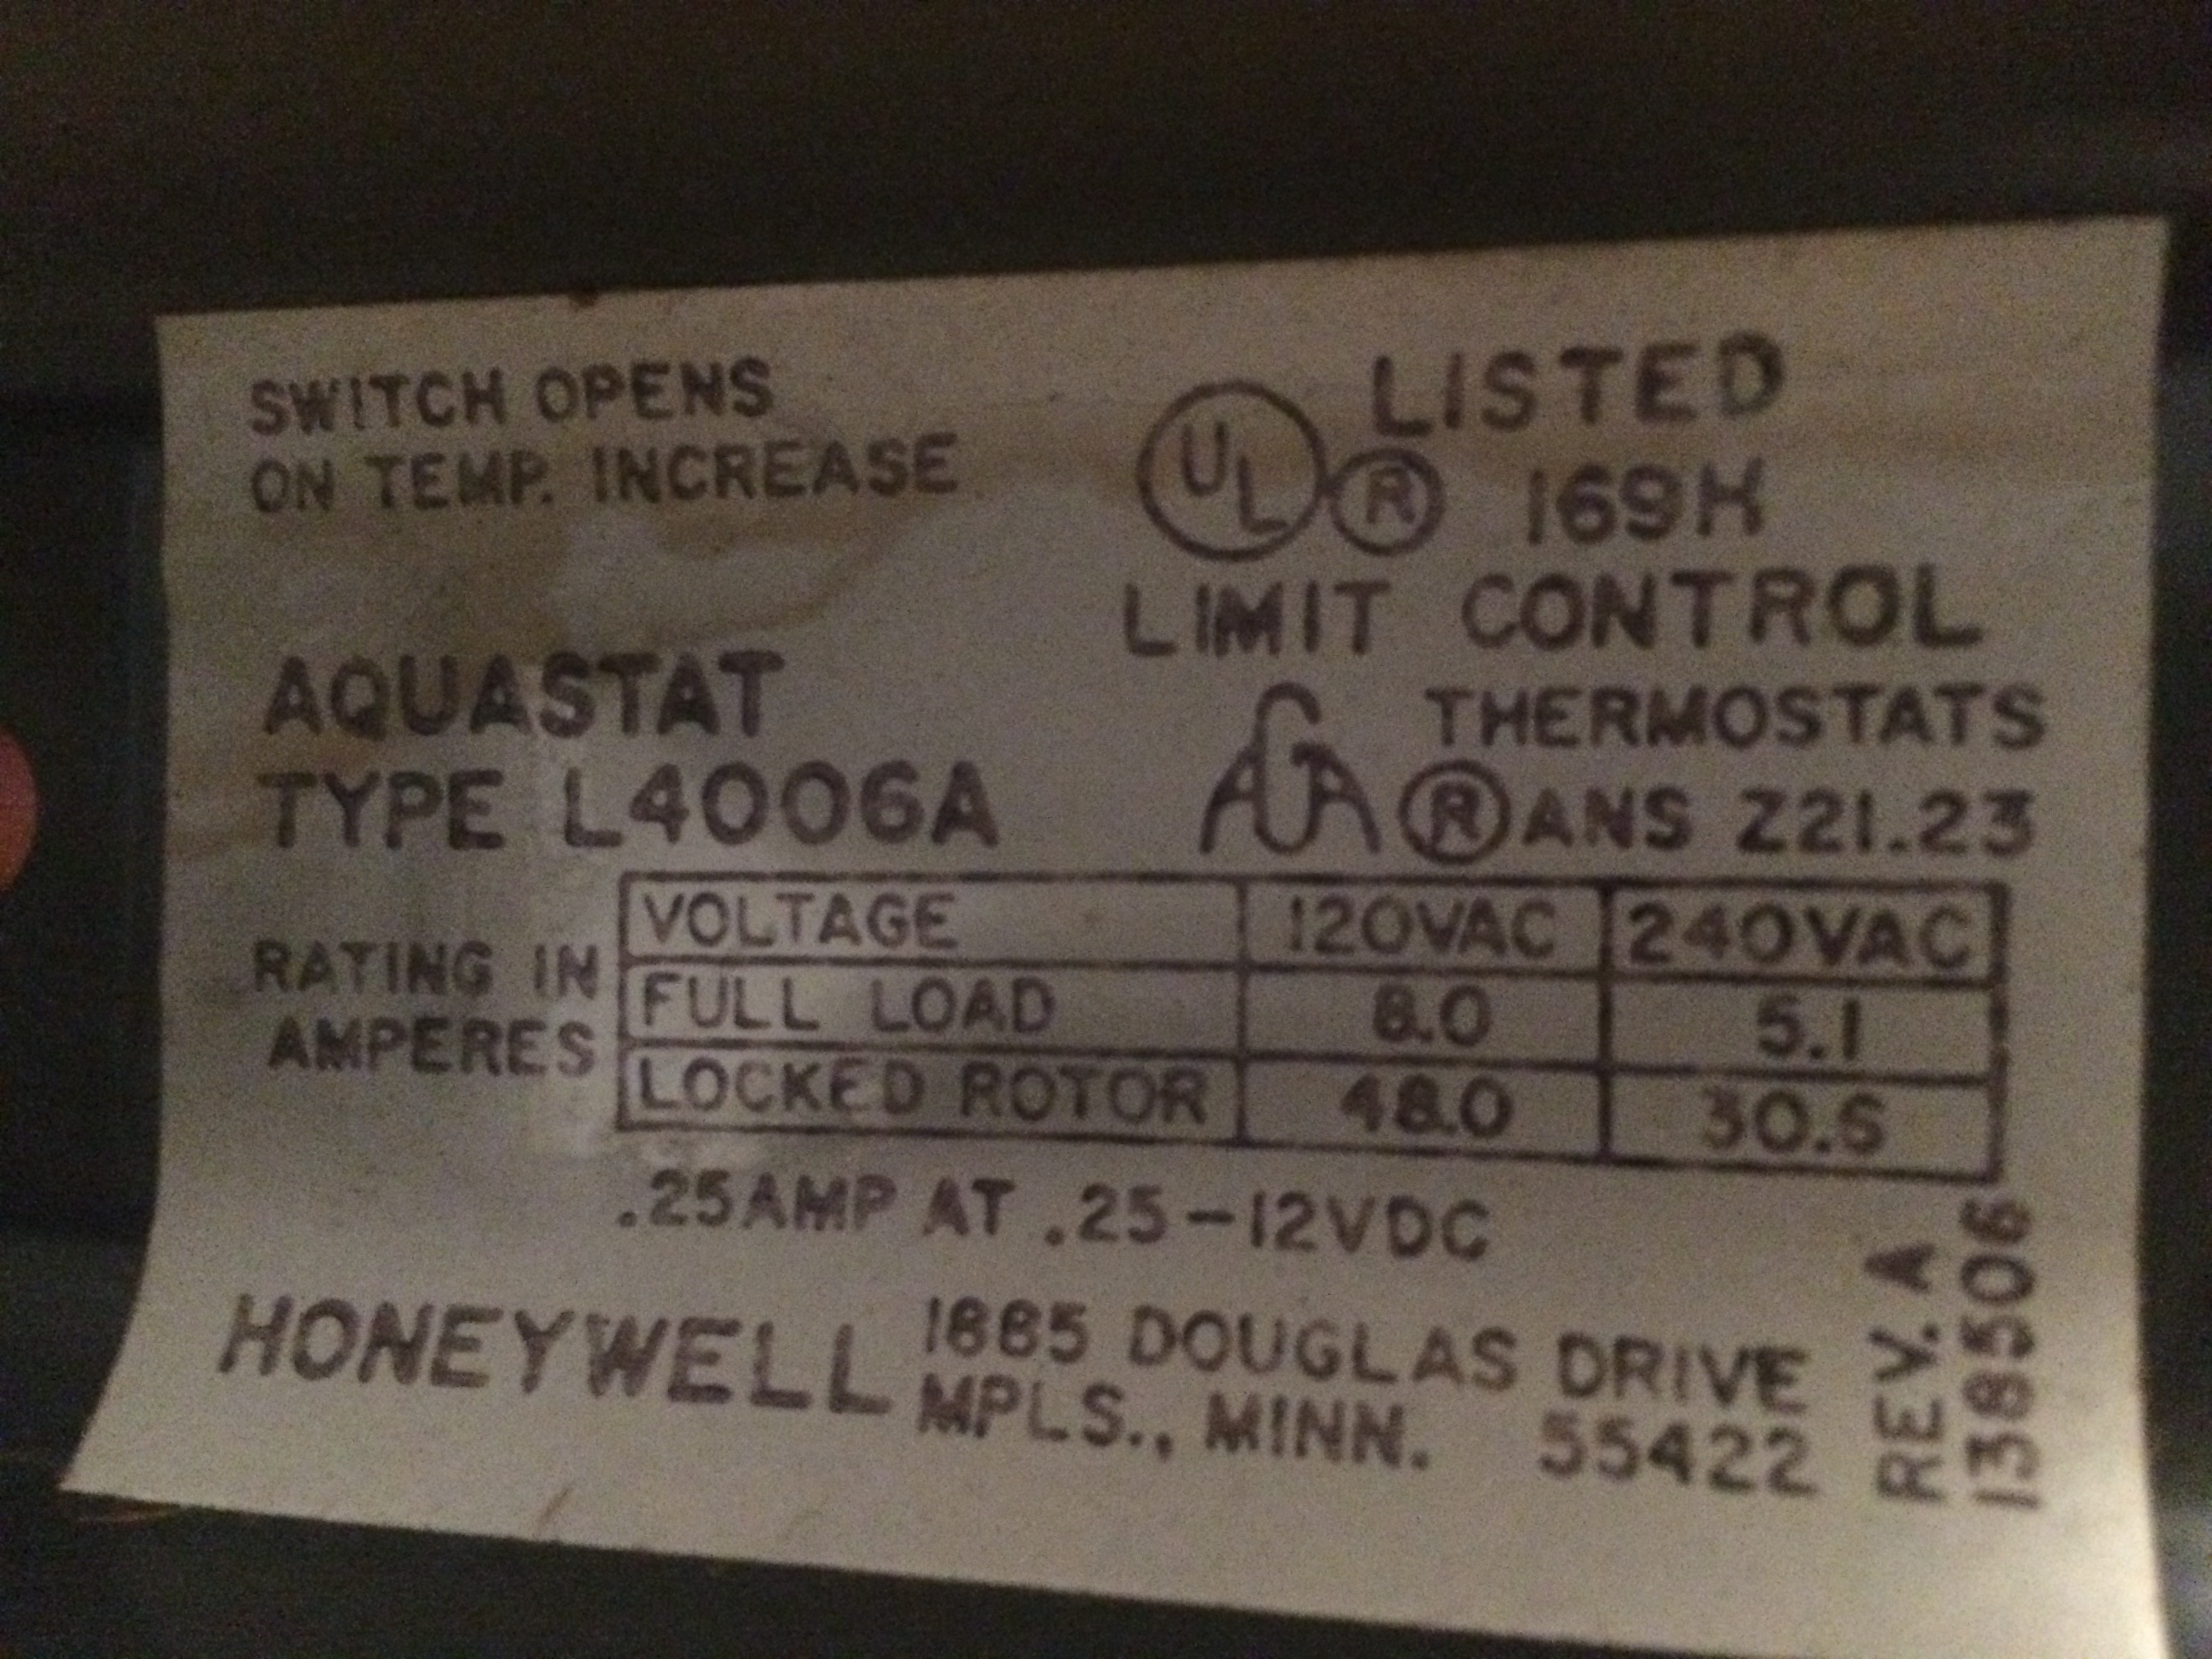 Common C Wire 24vac For Visionpro Th8110 With Redlink Heating Honeywell L7224 Wiring Diagram Img 2904